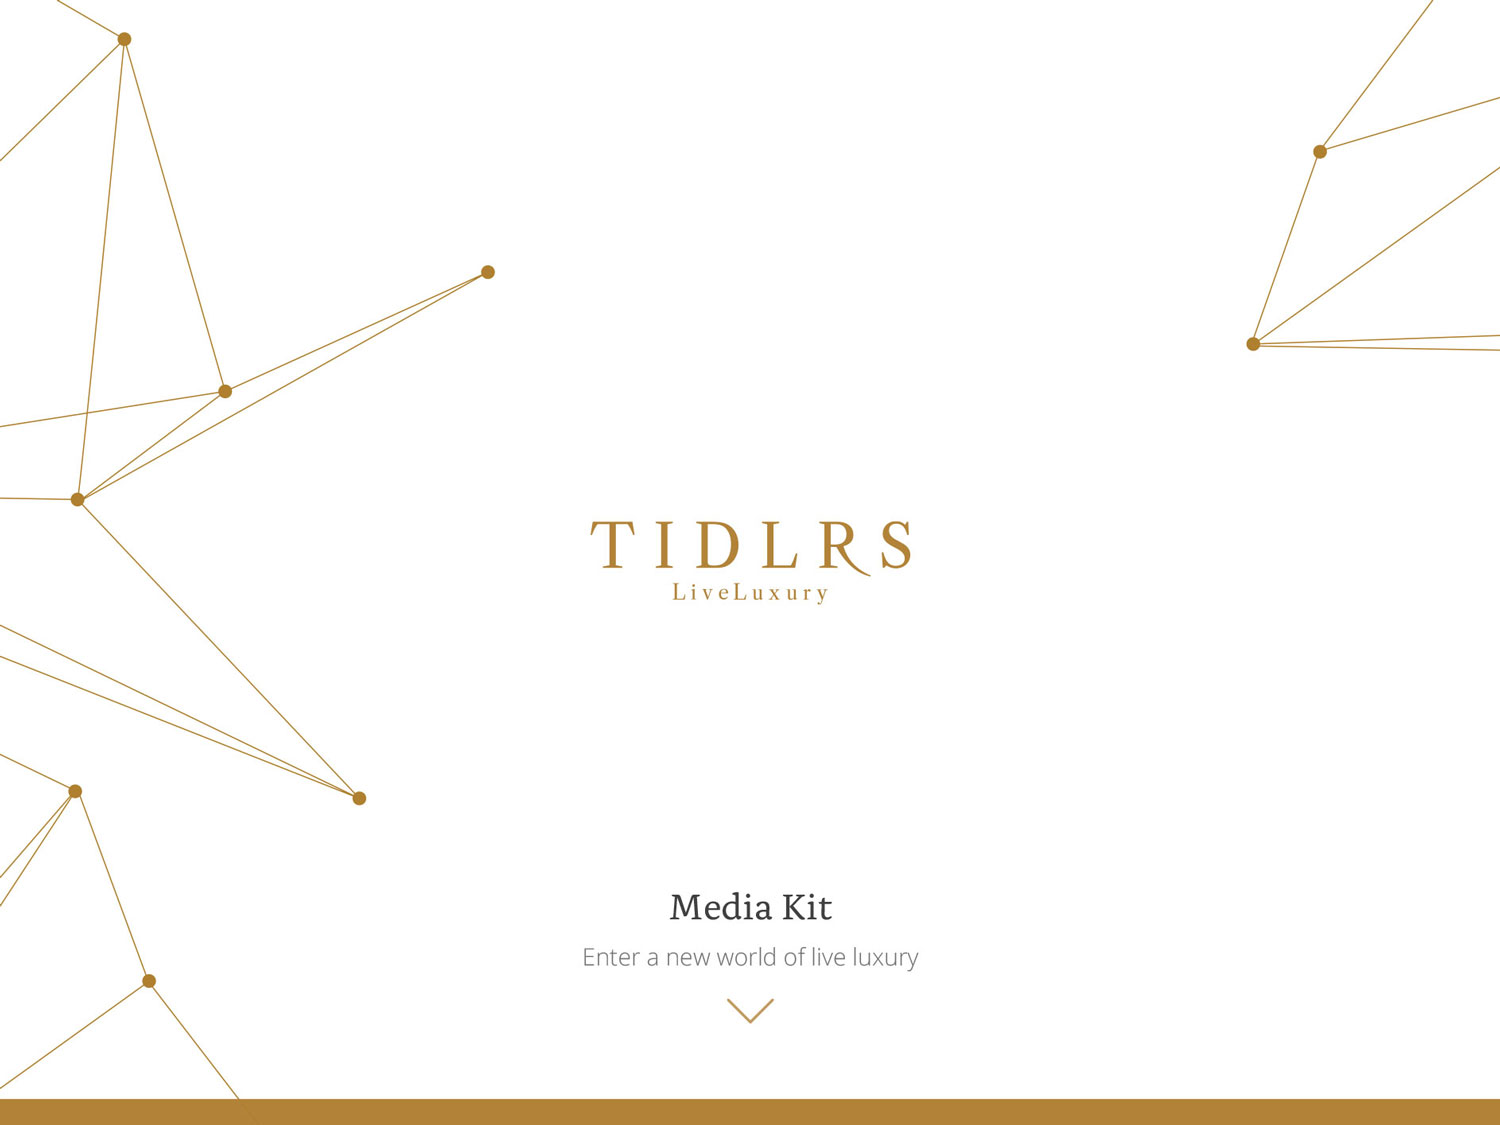 Media Kit Design / Editorial Content / Photography     Tidlrs